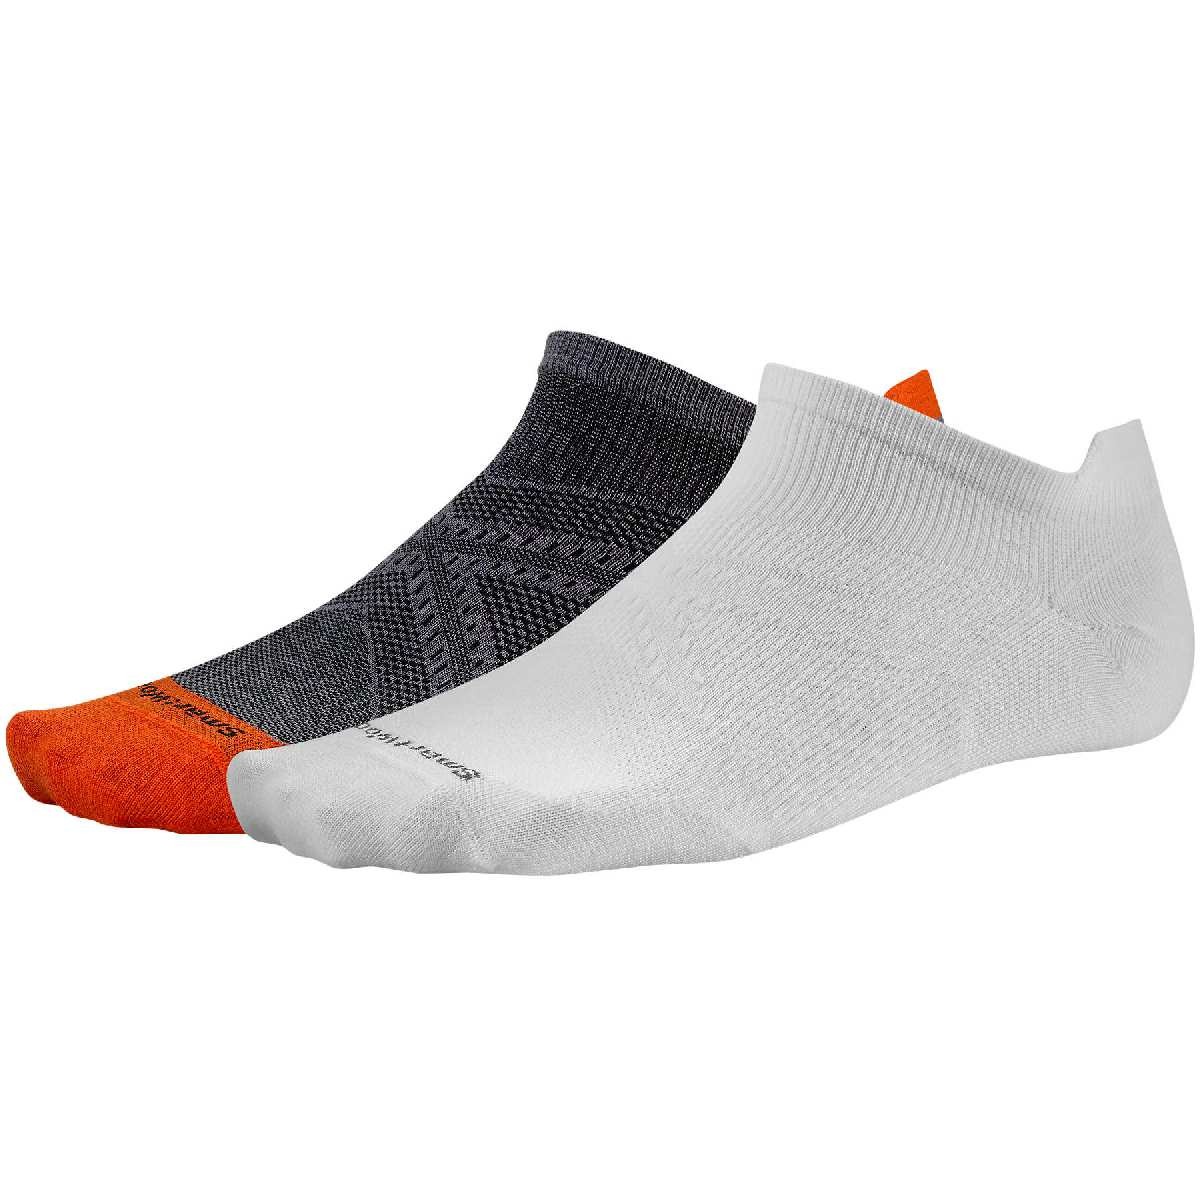 SmartWool 2 Pack PhD Ultra Light Micro Running Sock Size M White BrightOrange U.S.A. & Canada